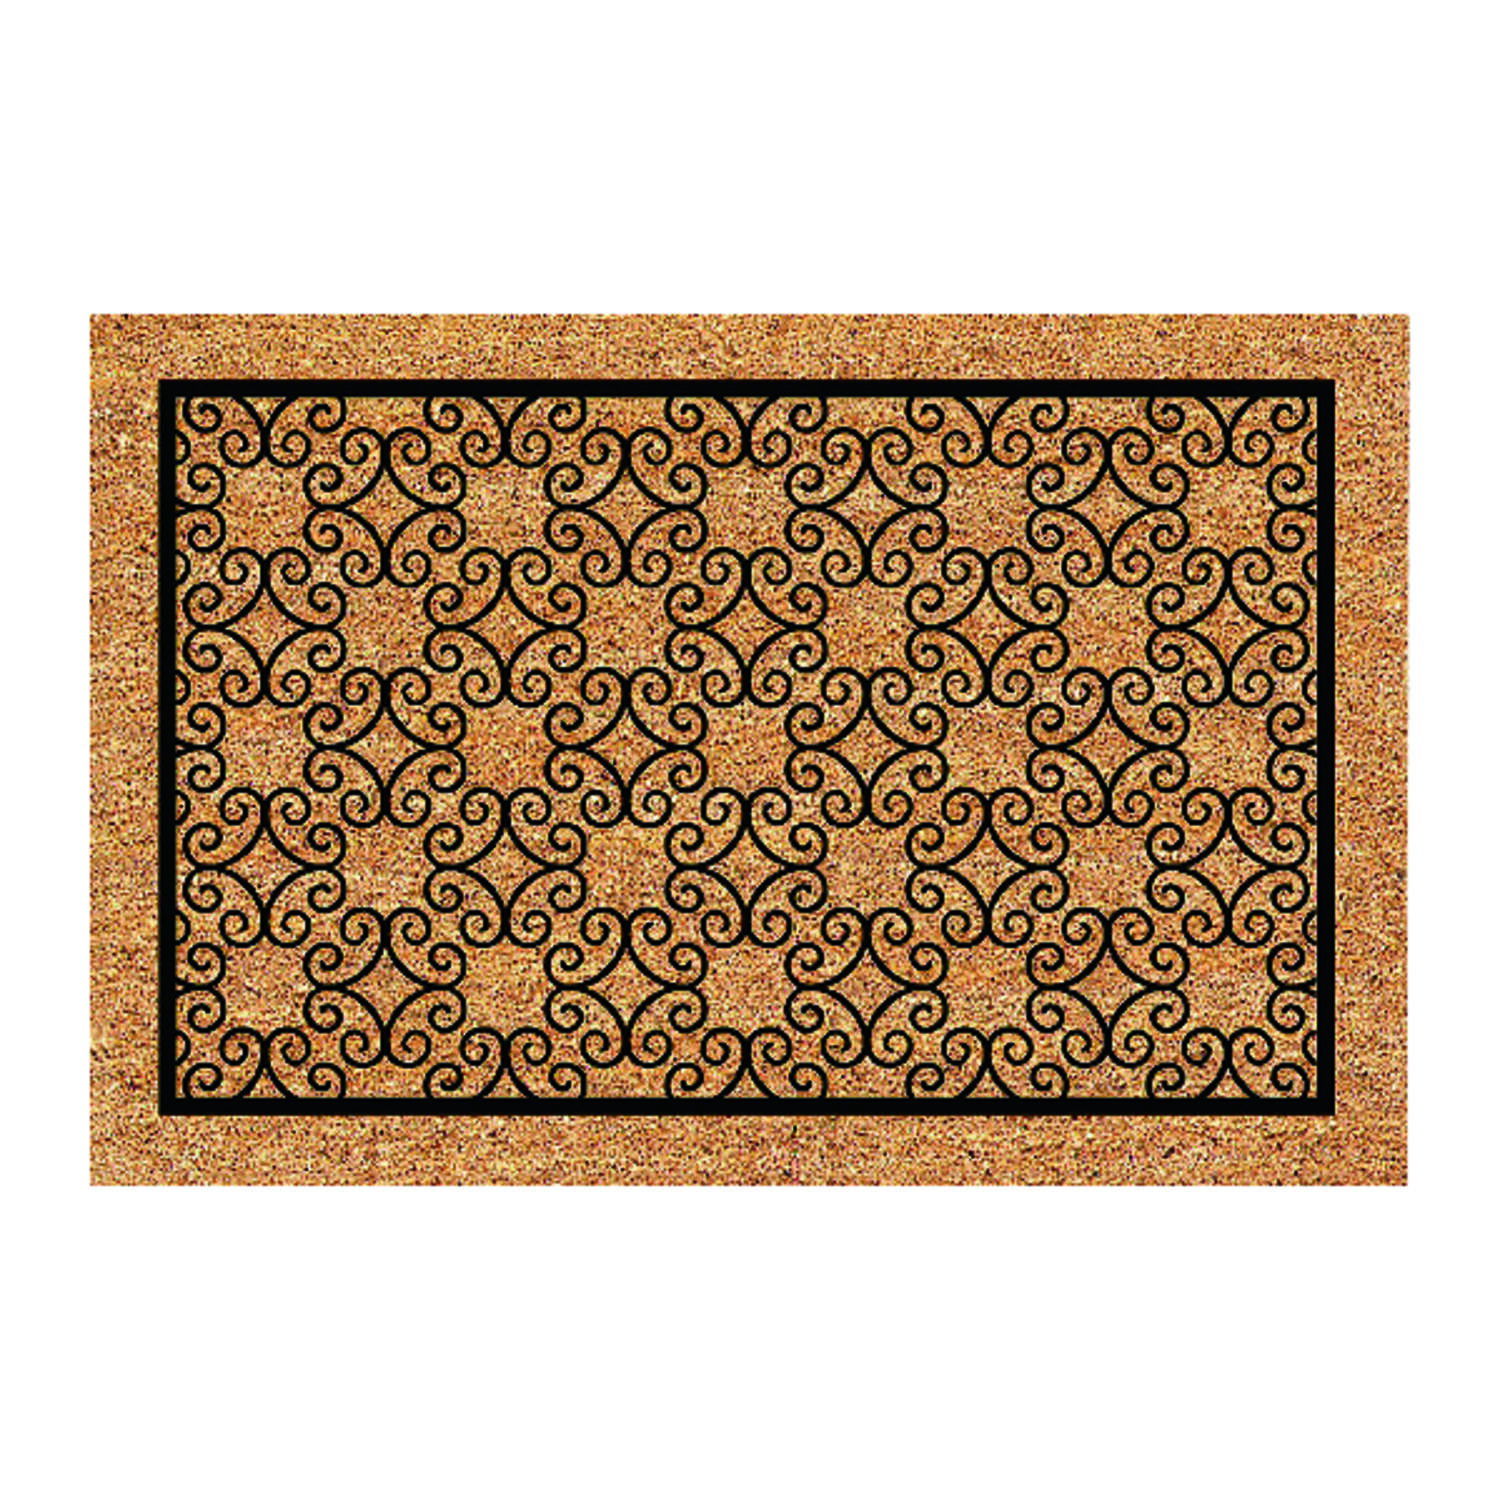 DeCoir  24 in. L x 36 in. W Tan/Black  Piedmont  Coir  Nonslip Door Mat